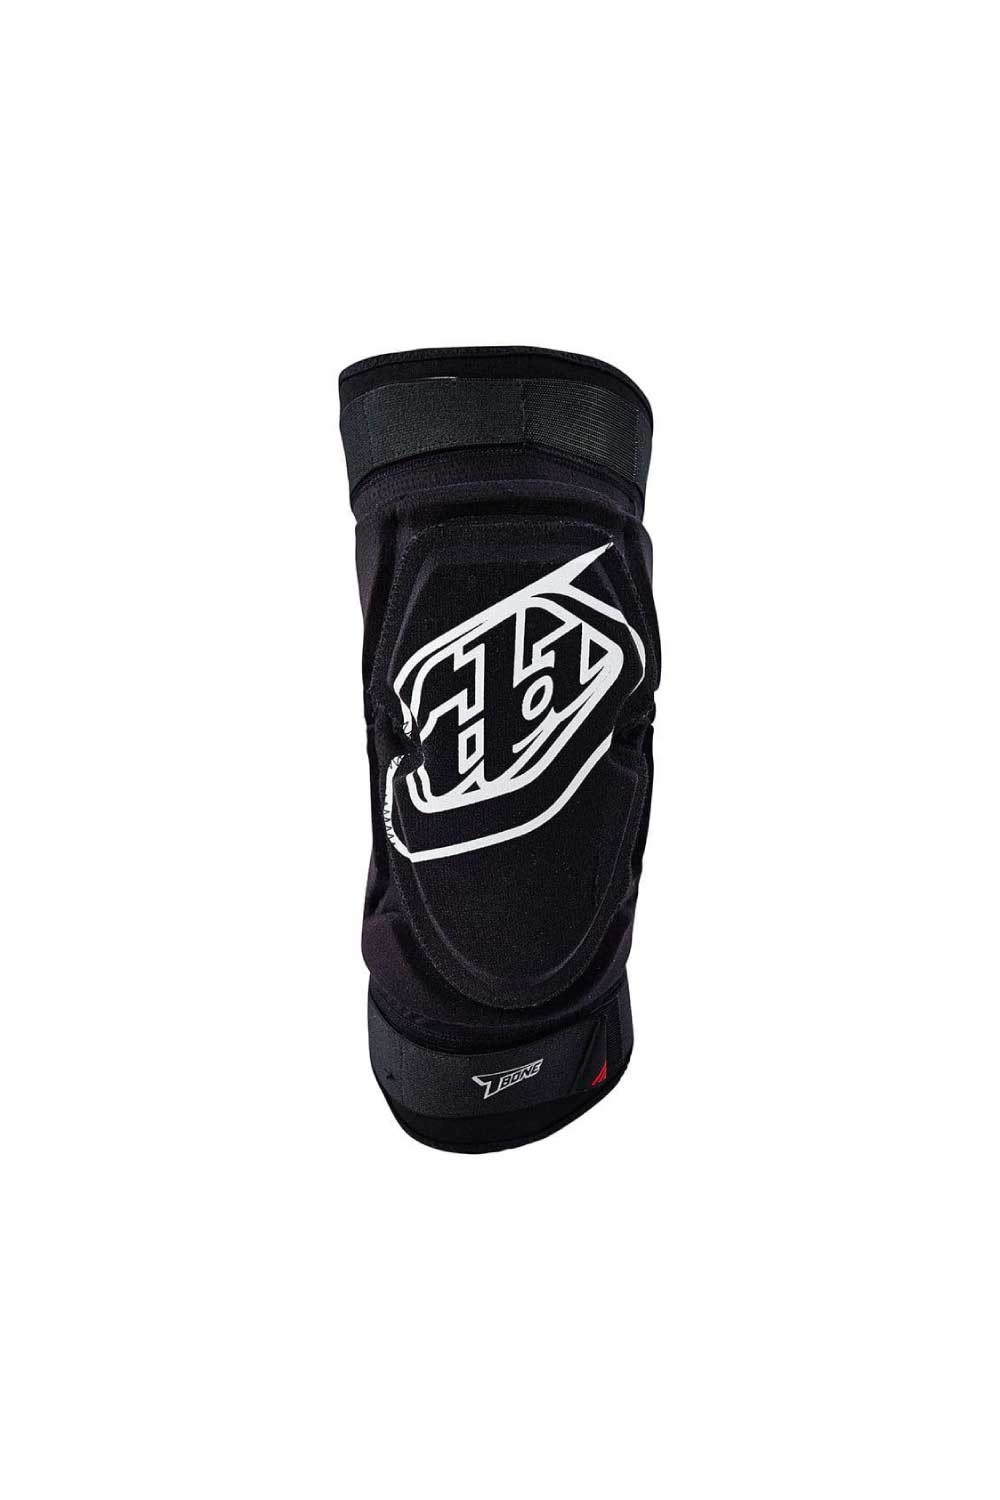 Troy Lee Designs T-Bone MTB Knee Pads